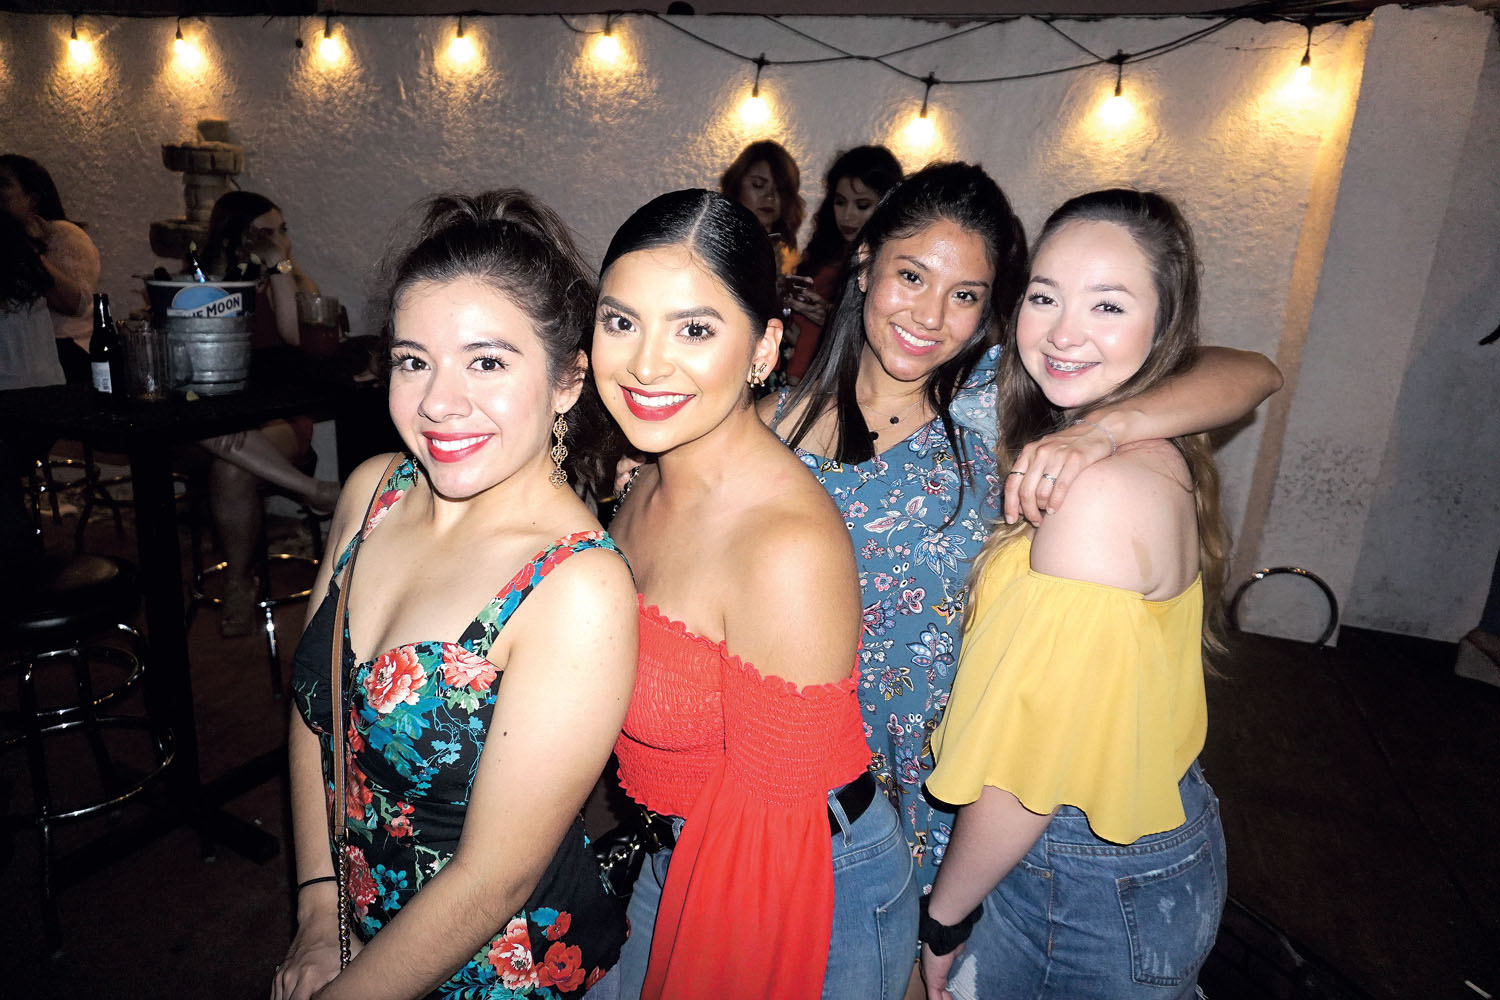 Photos: Laredoans caught partying out in the border nightlife